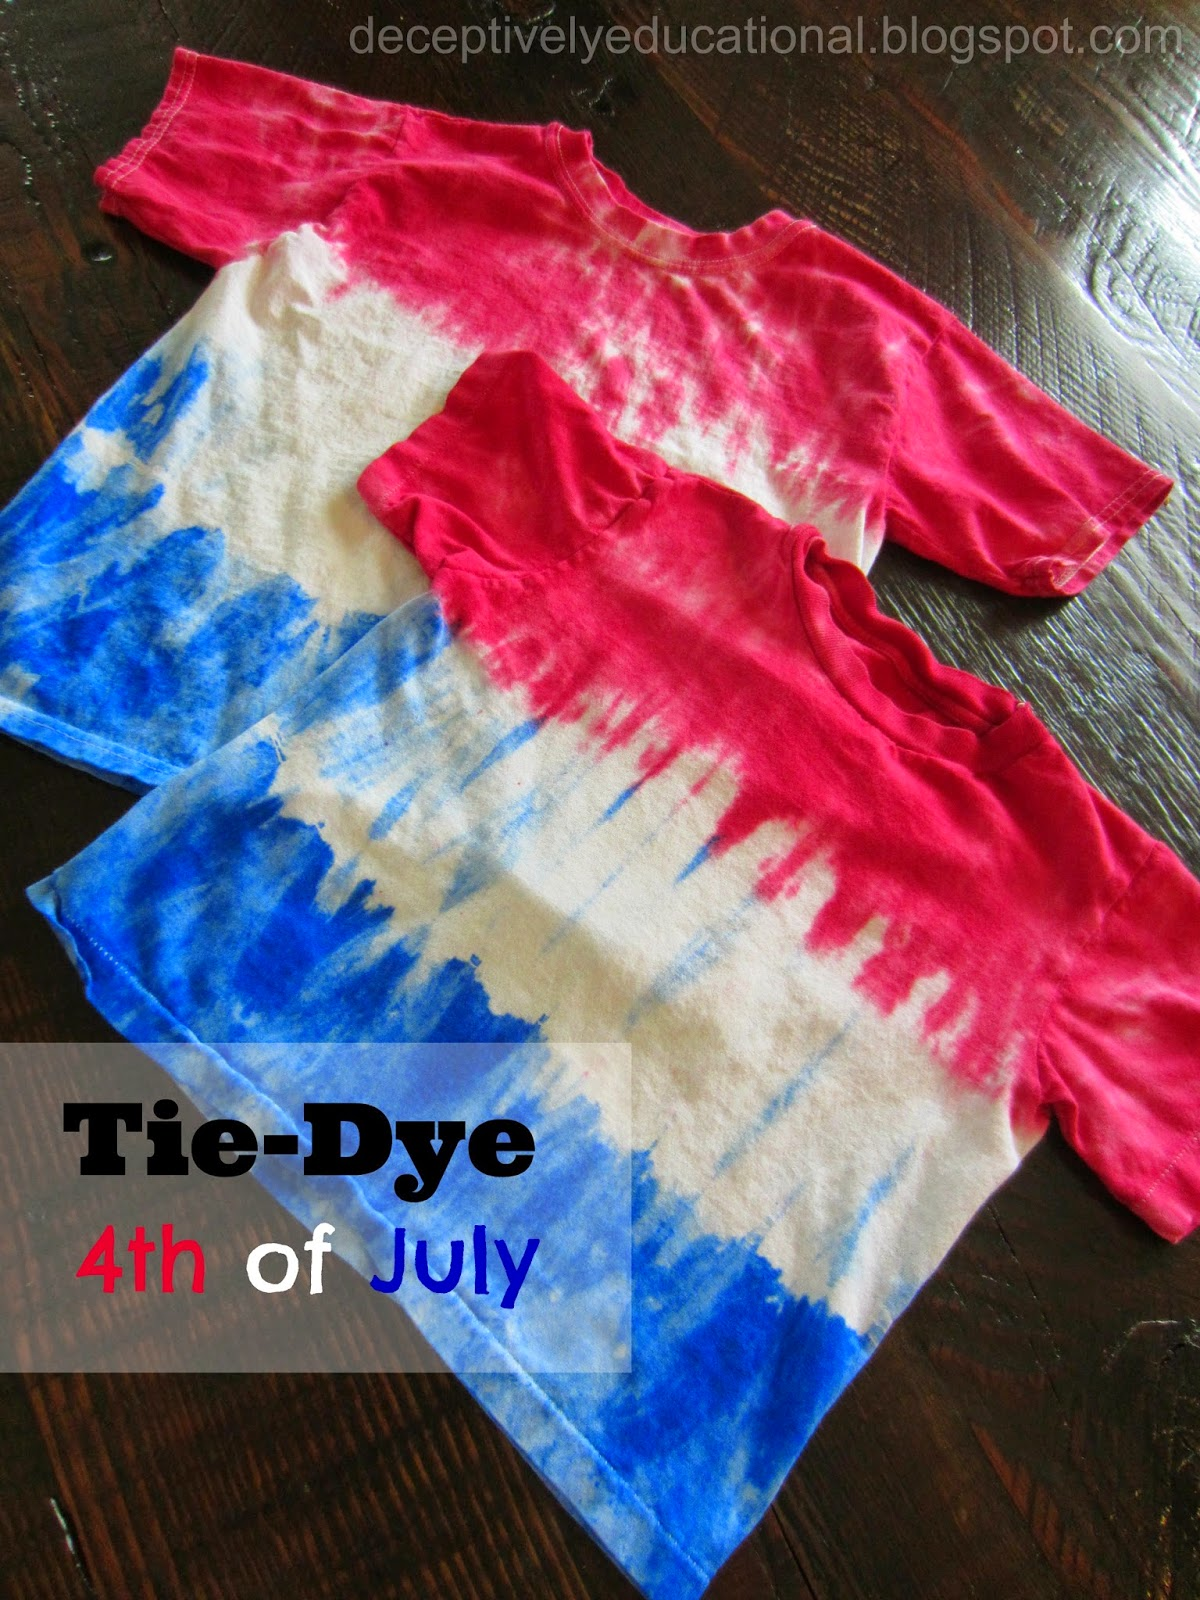 relentlessly deceptively educational tie dye fourth